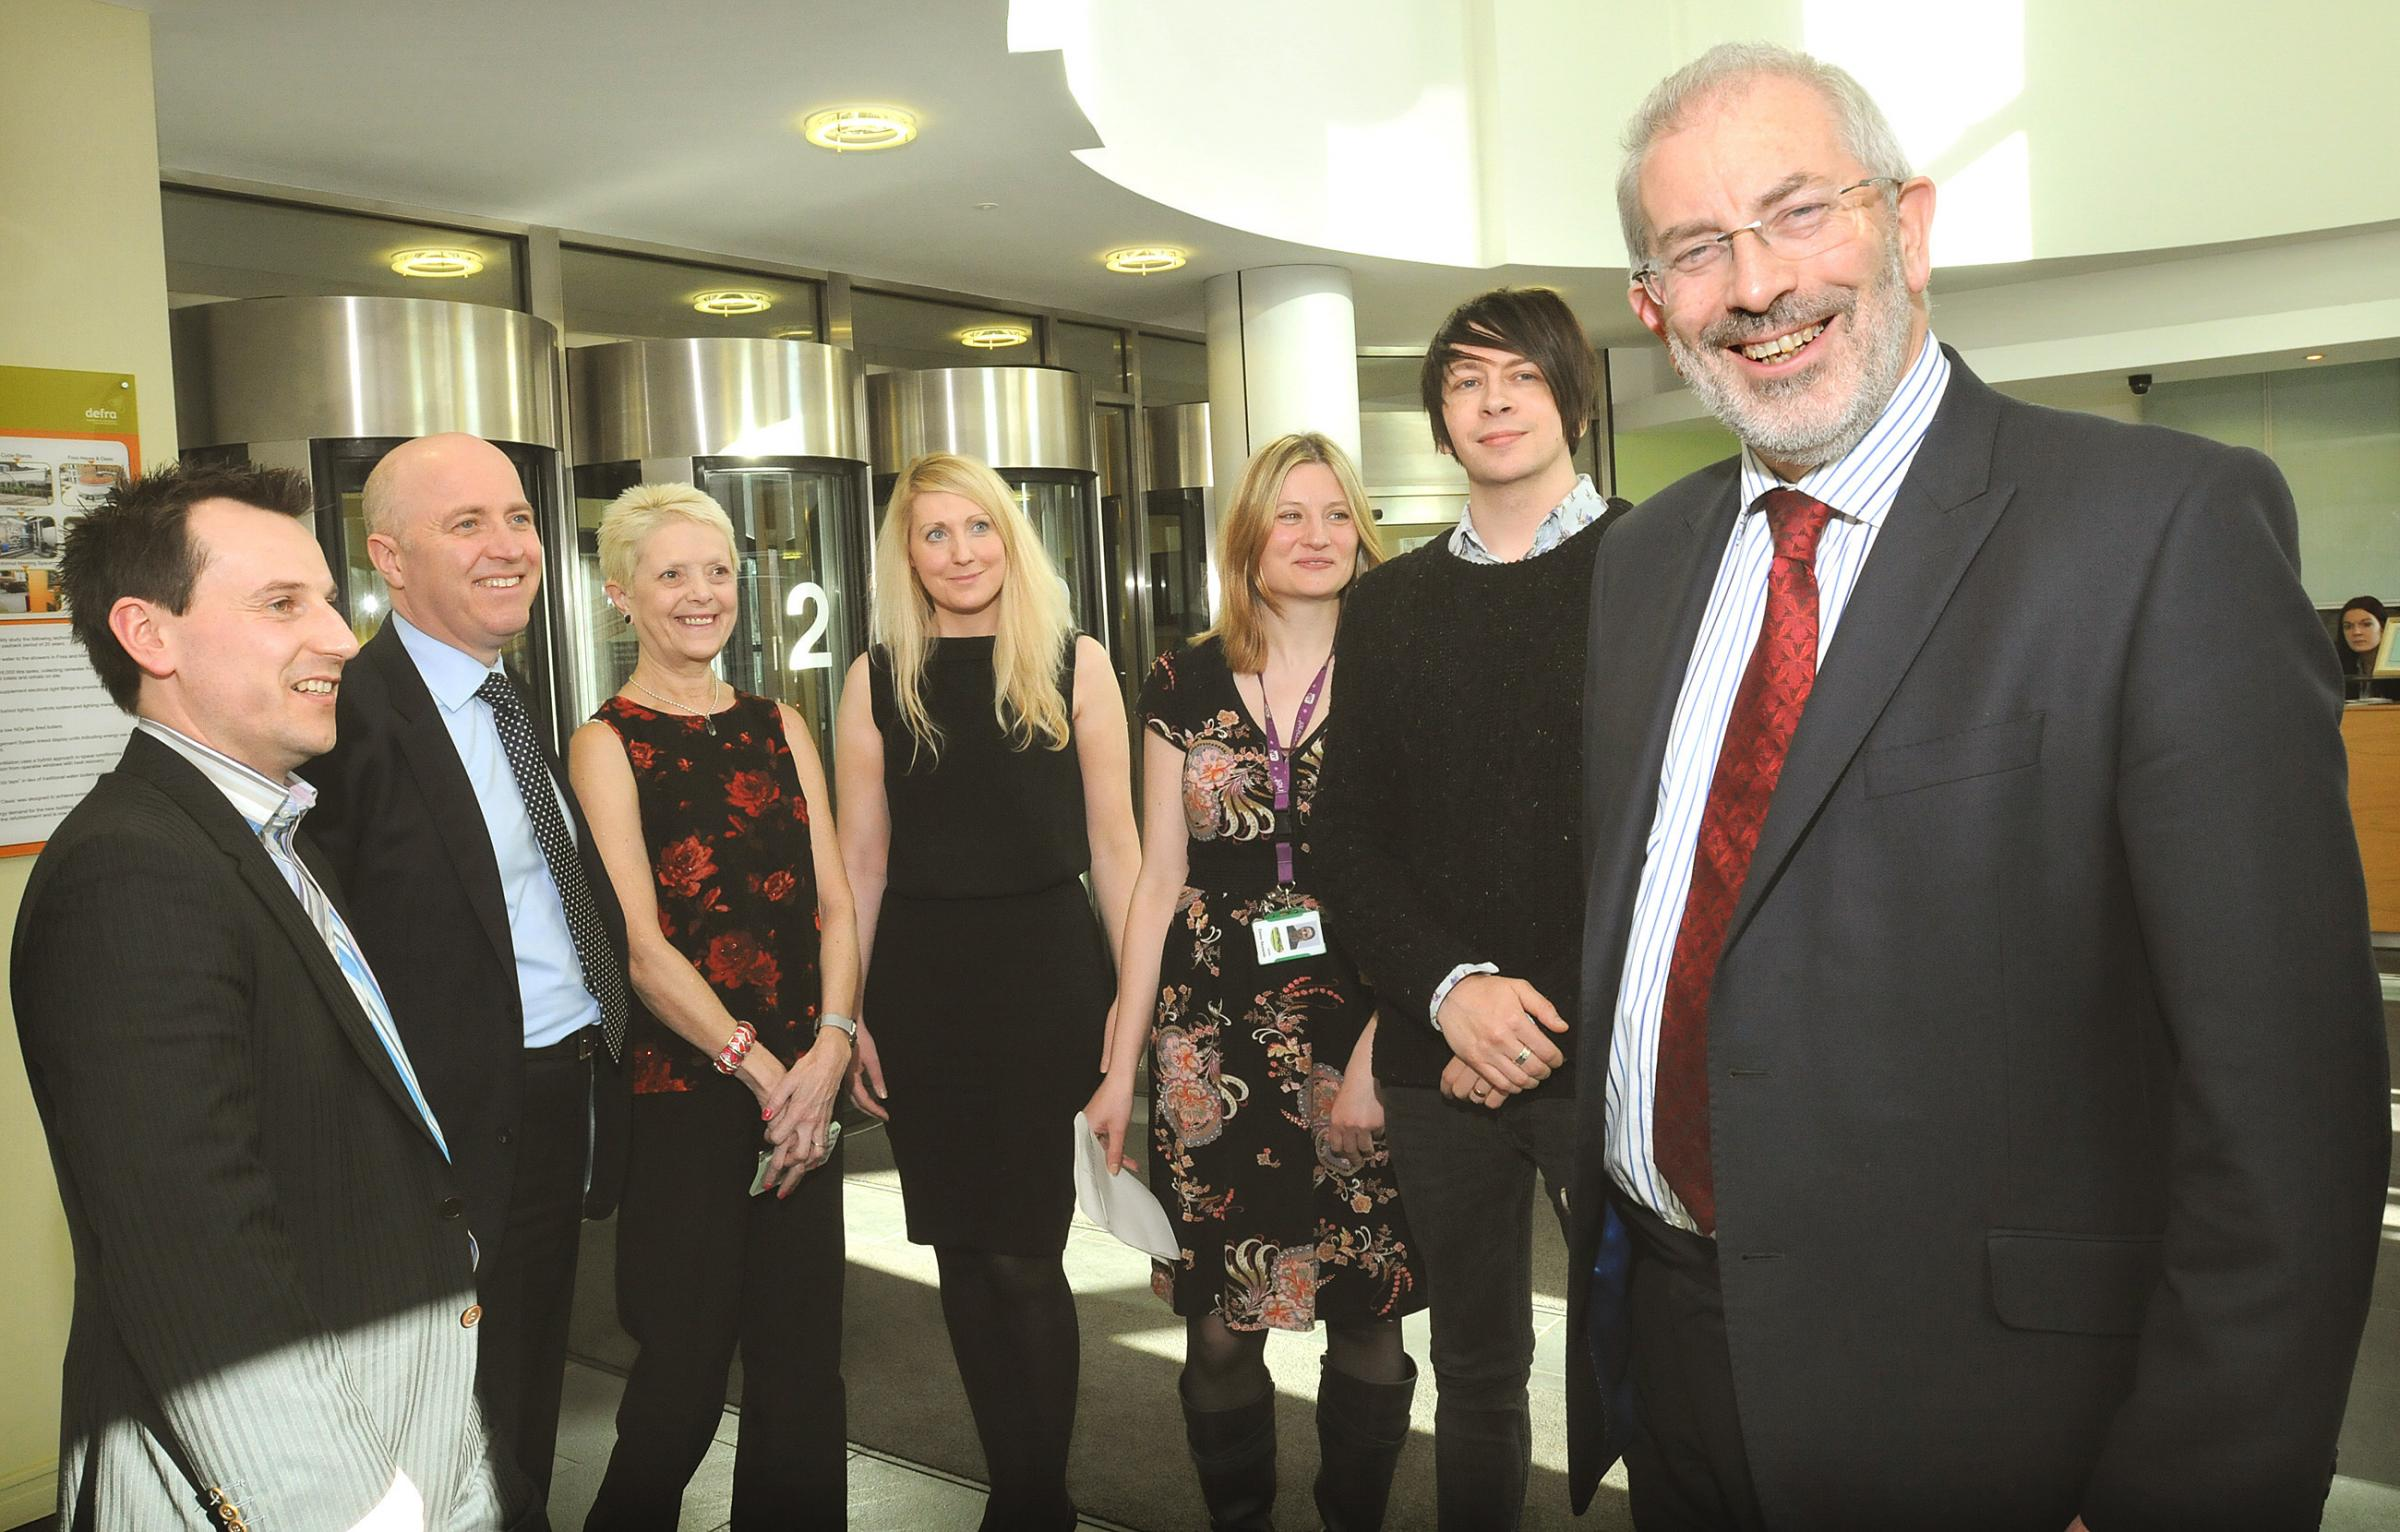 Sir Bob Kerslake, Head of the UK Civil Service with members of the Food Standards Agency during his visit to Foss House in York. From left are Michael Todd, Ken Anderson, Sue Richardson, Jayne Humble, Emma Reynolds and James Baker